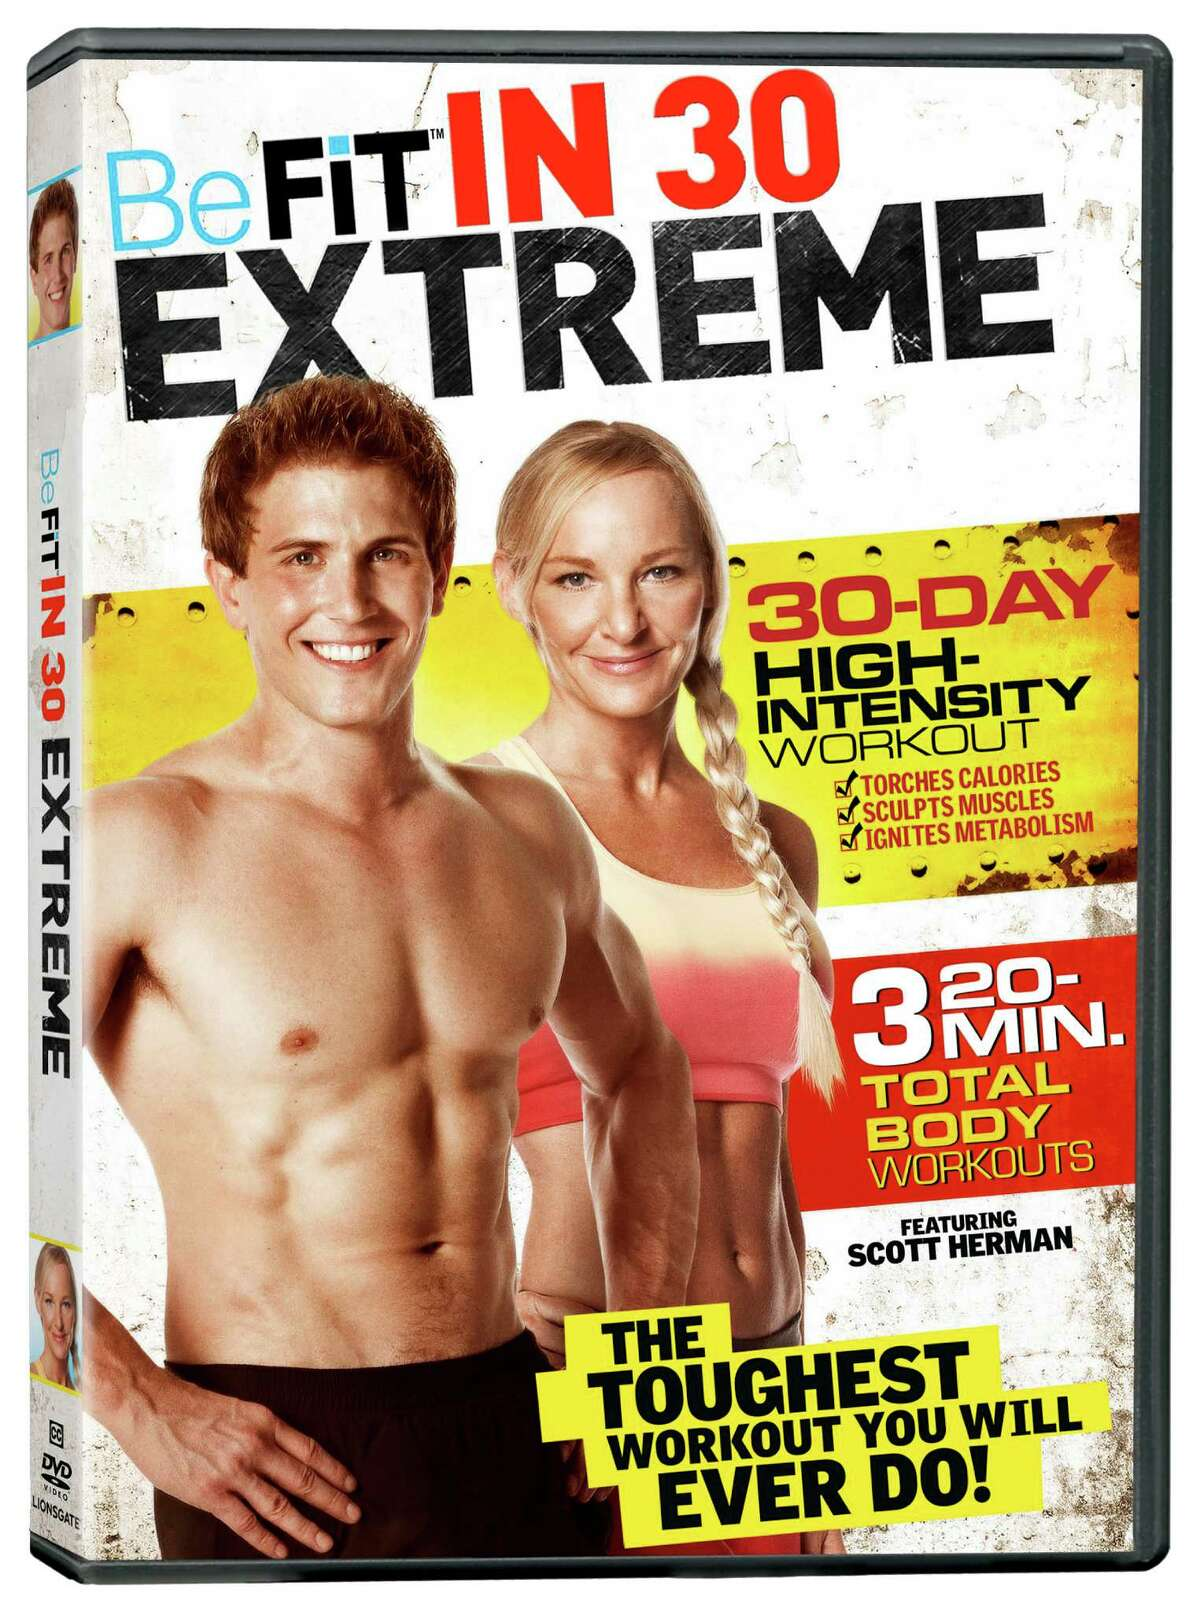 BeFit in 30 Extreme: Fitness YouTube star Scott Herman and trainer Susan Becraft serve up three 20-minute full-body workouts in this high-intensity DVD. Lionsgate Home Entertainment, $14.98 at DVD retailers and online starting Tuesday.